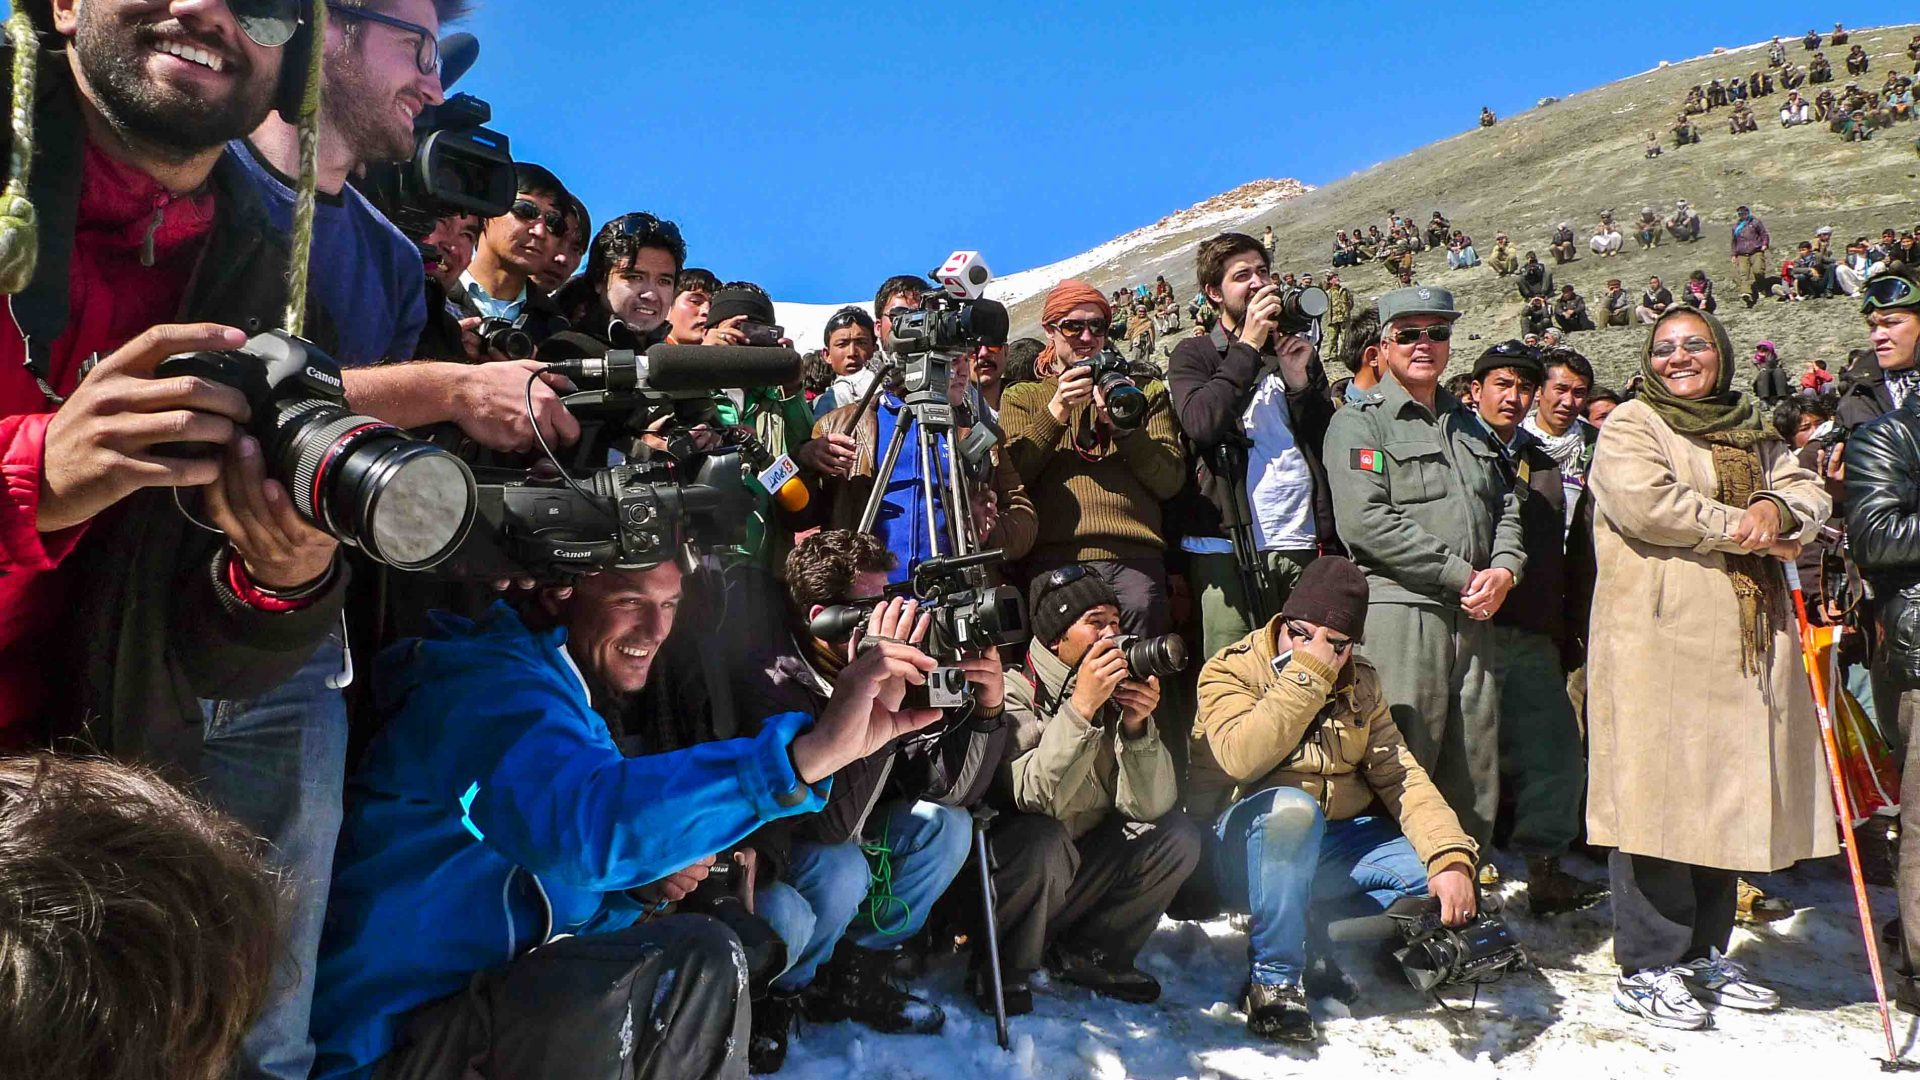 Photographers line up at the Afghan Ski Challenge.